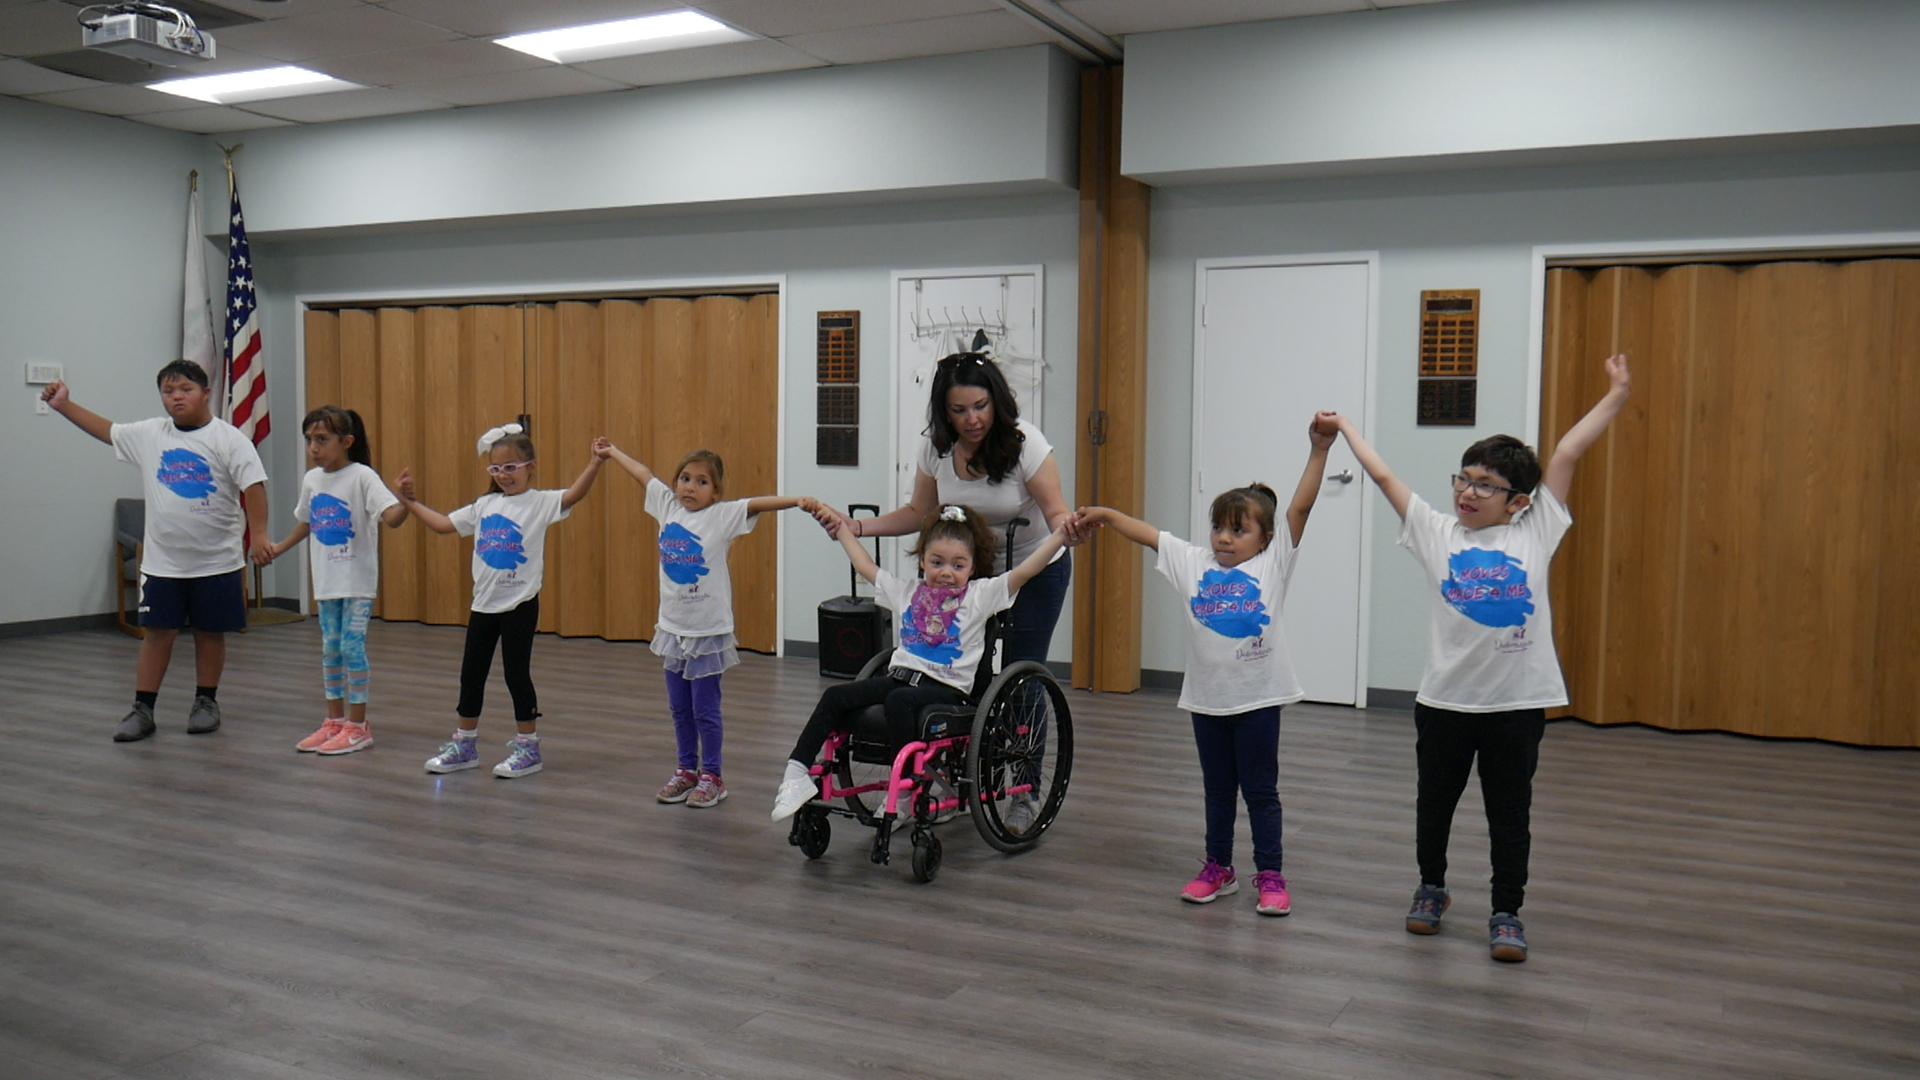 Partnered with the City of Gilroy we are offering tuition based inclusive dance classes since January 2019. This is making a big difference in the lives of kids who otherwise wouldn't have a dance class tailored to meet their needs. We have served 30 families.